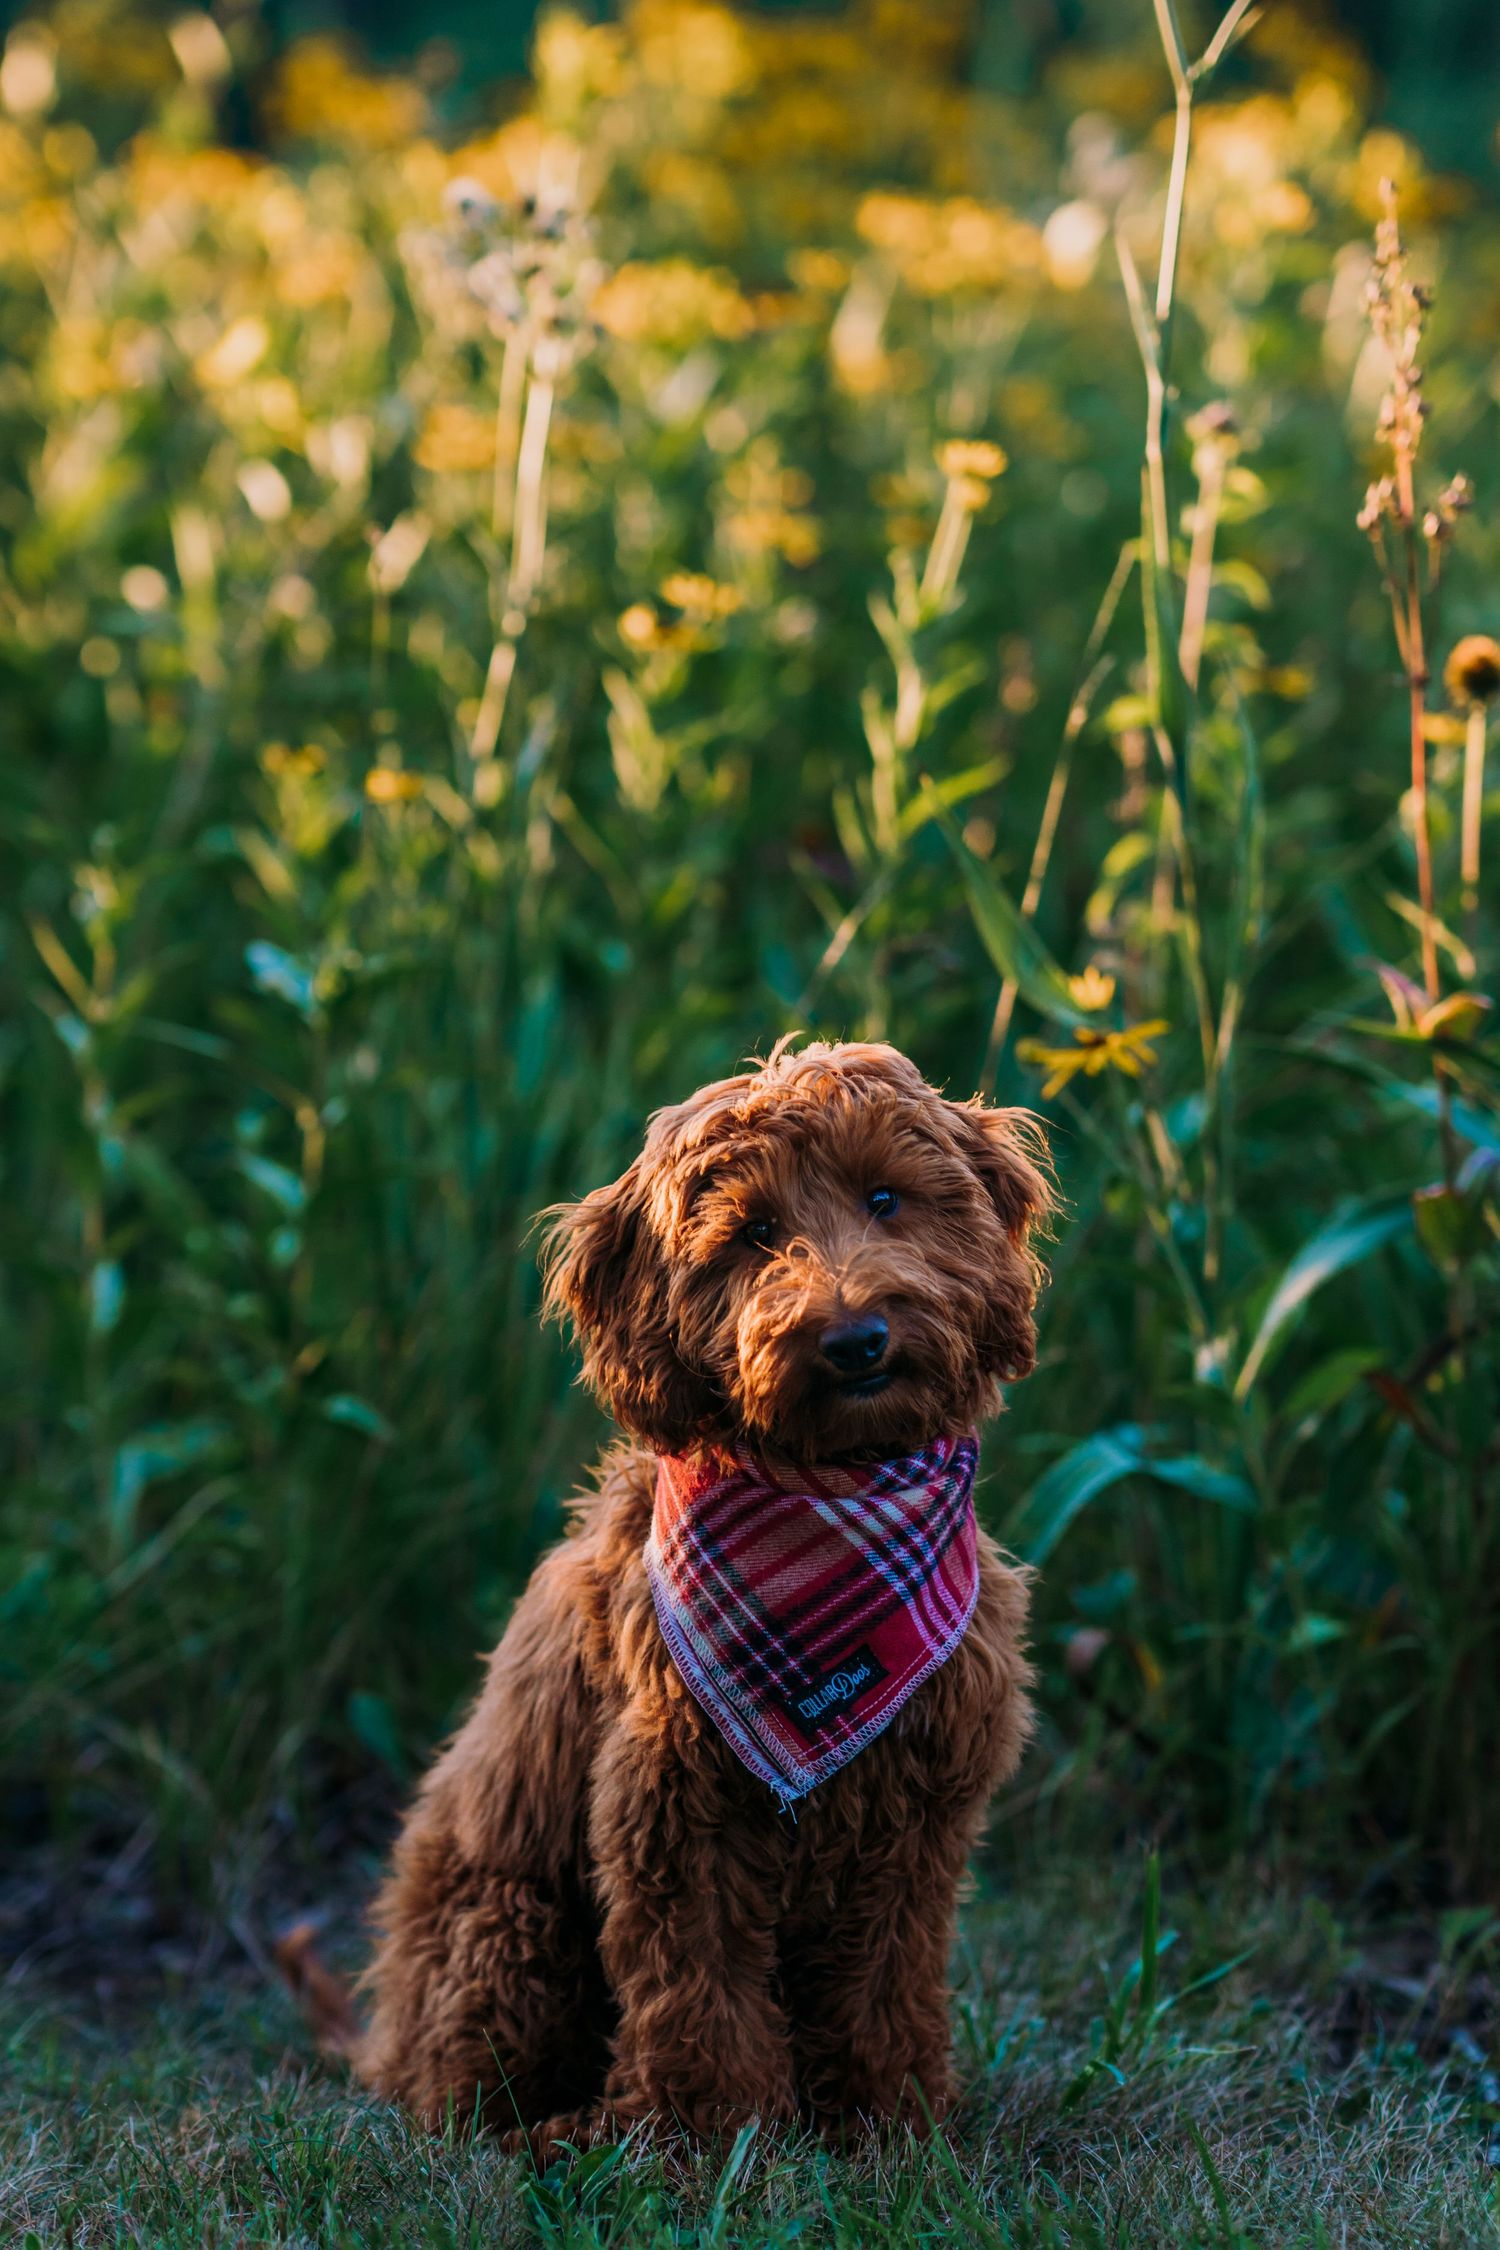 Goldendoodle photos Family pet photographer Cincinnati Ohio Dog photography Dayton Ohio